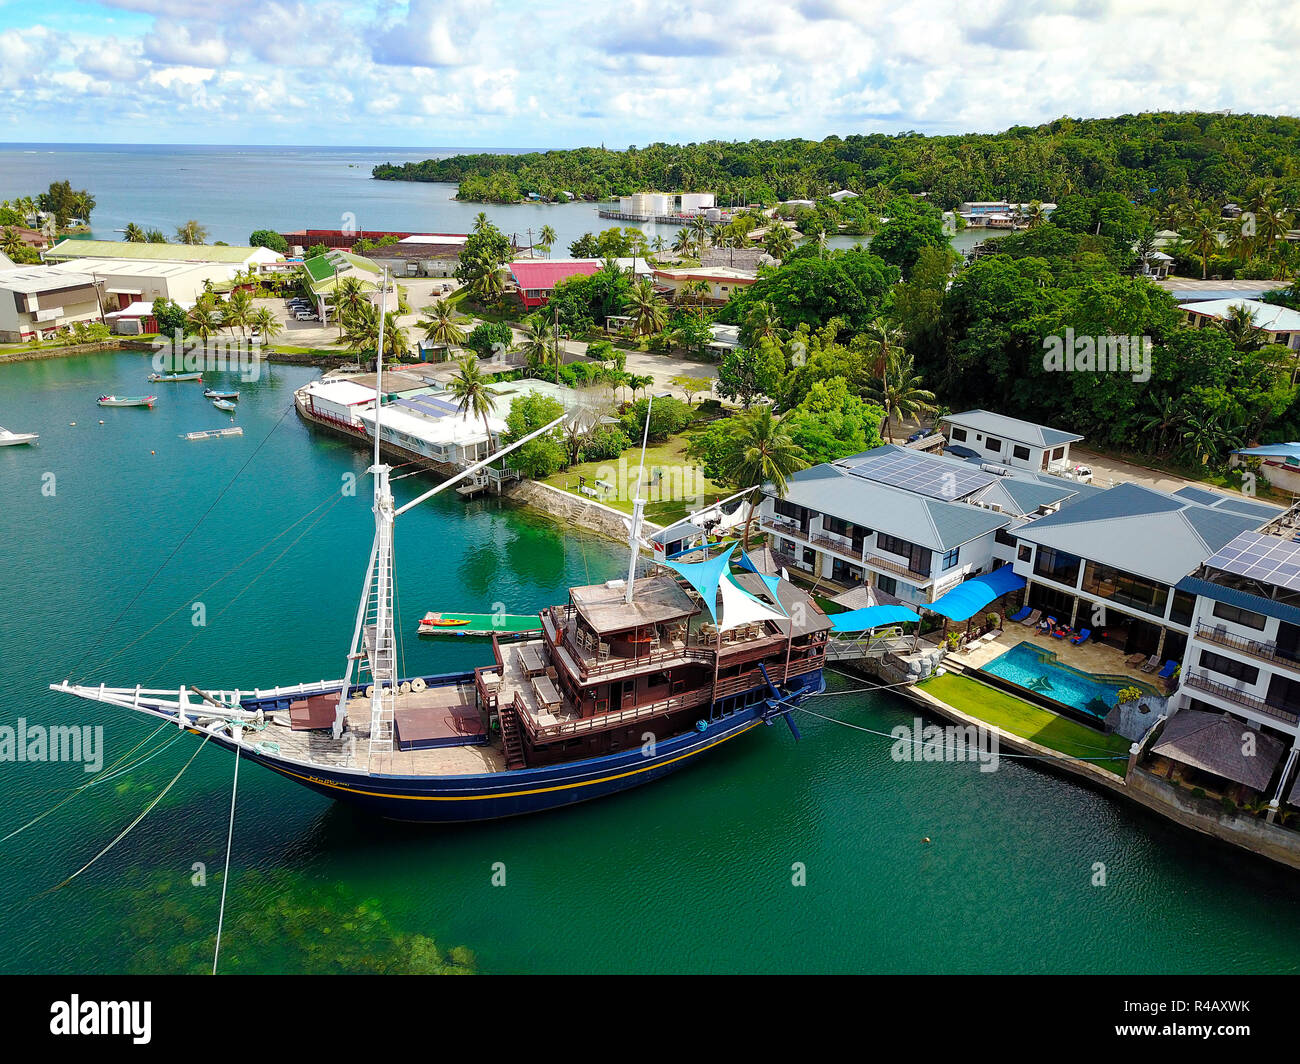 restaurant ship, ancient junk, Manta Ray Bay Resort, Colonia, Yap Island, Caroline islands, pacific, Oceania, Federated states of Micronesia - Stock Image